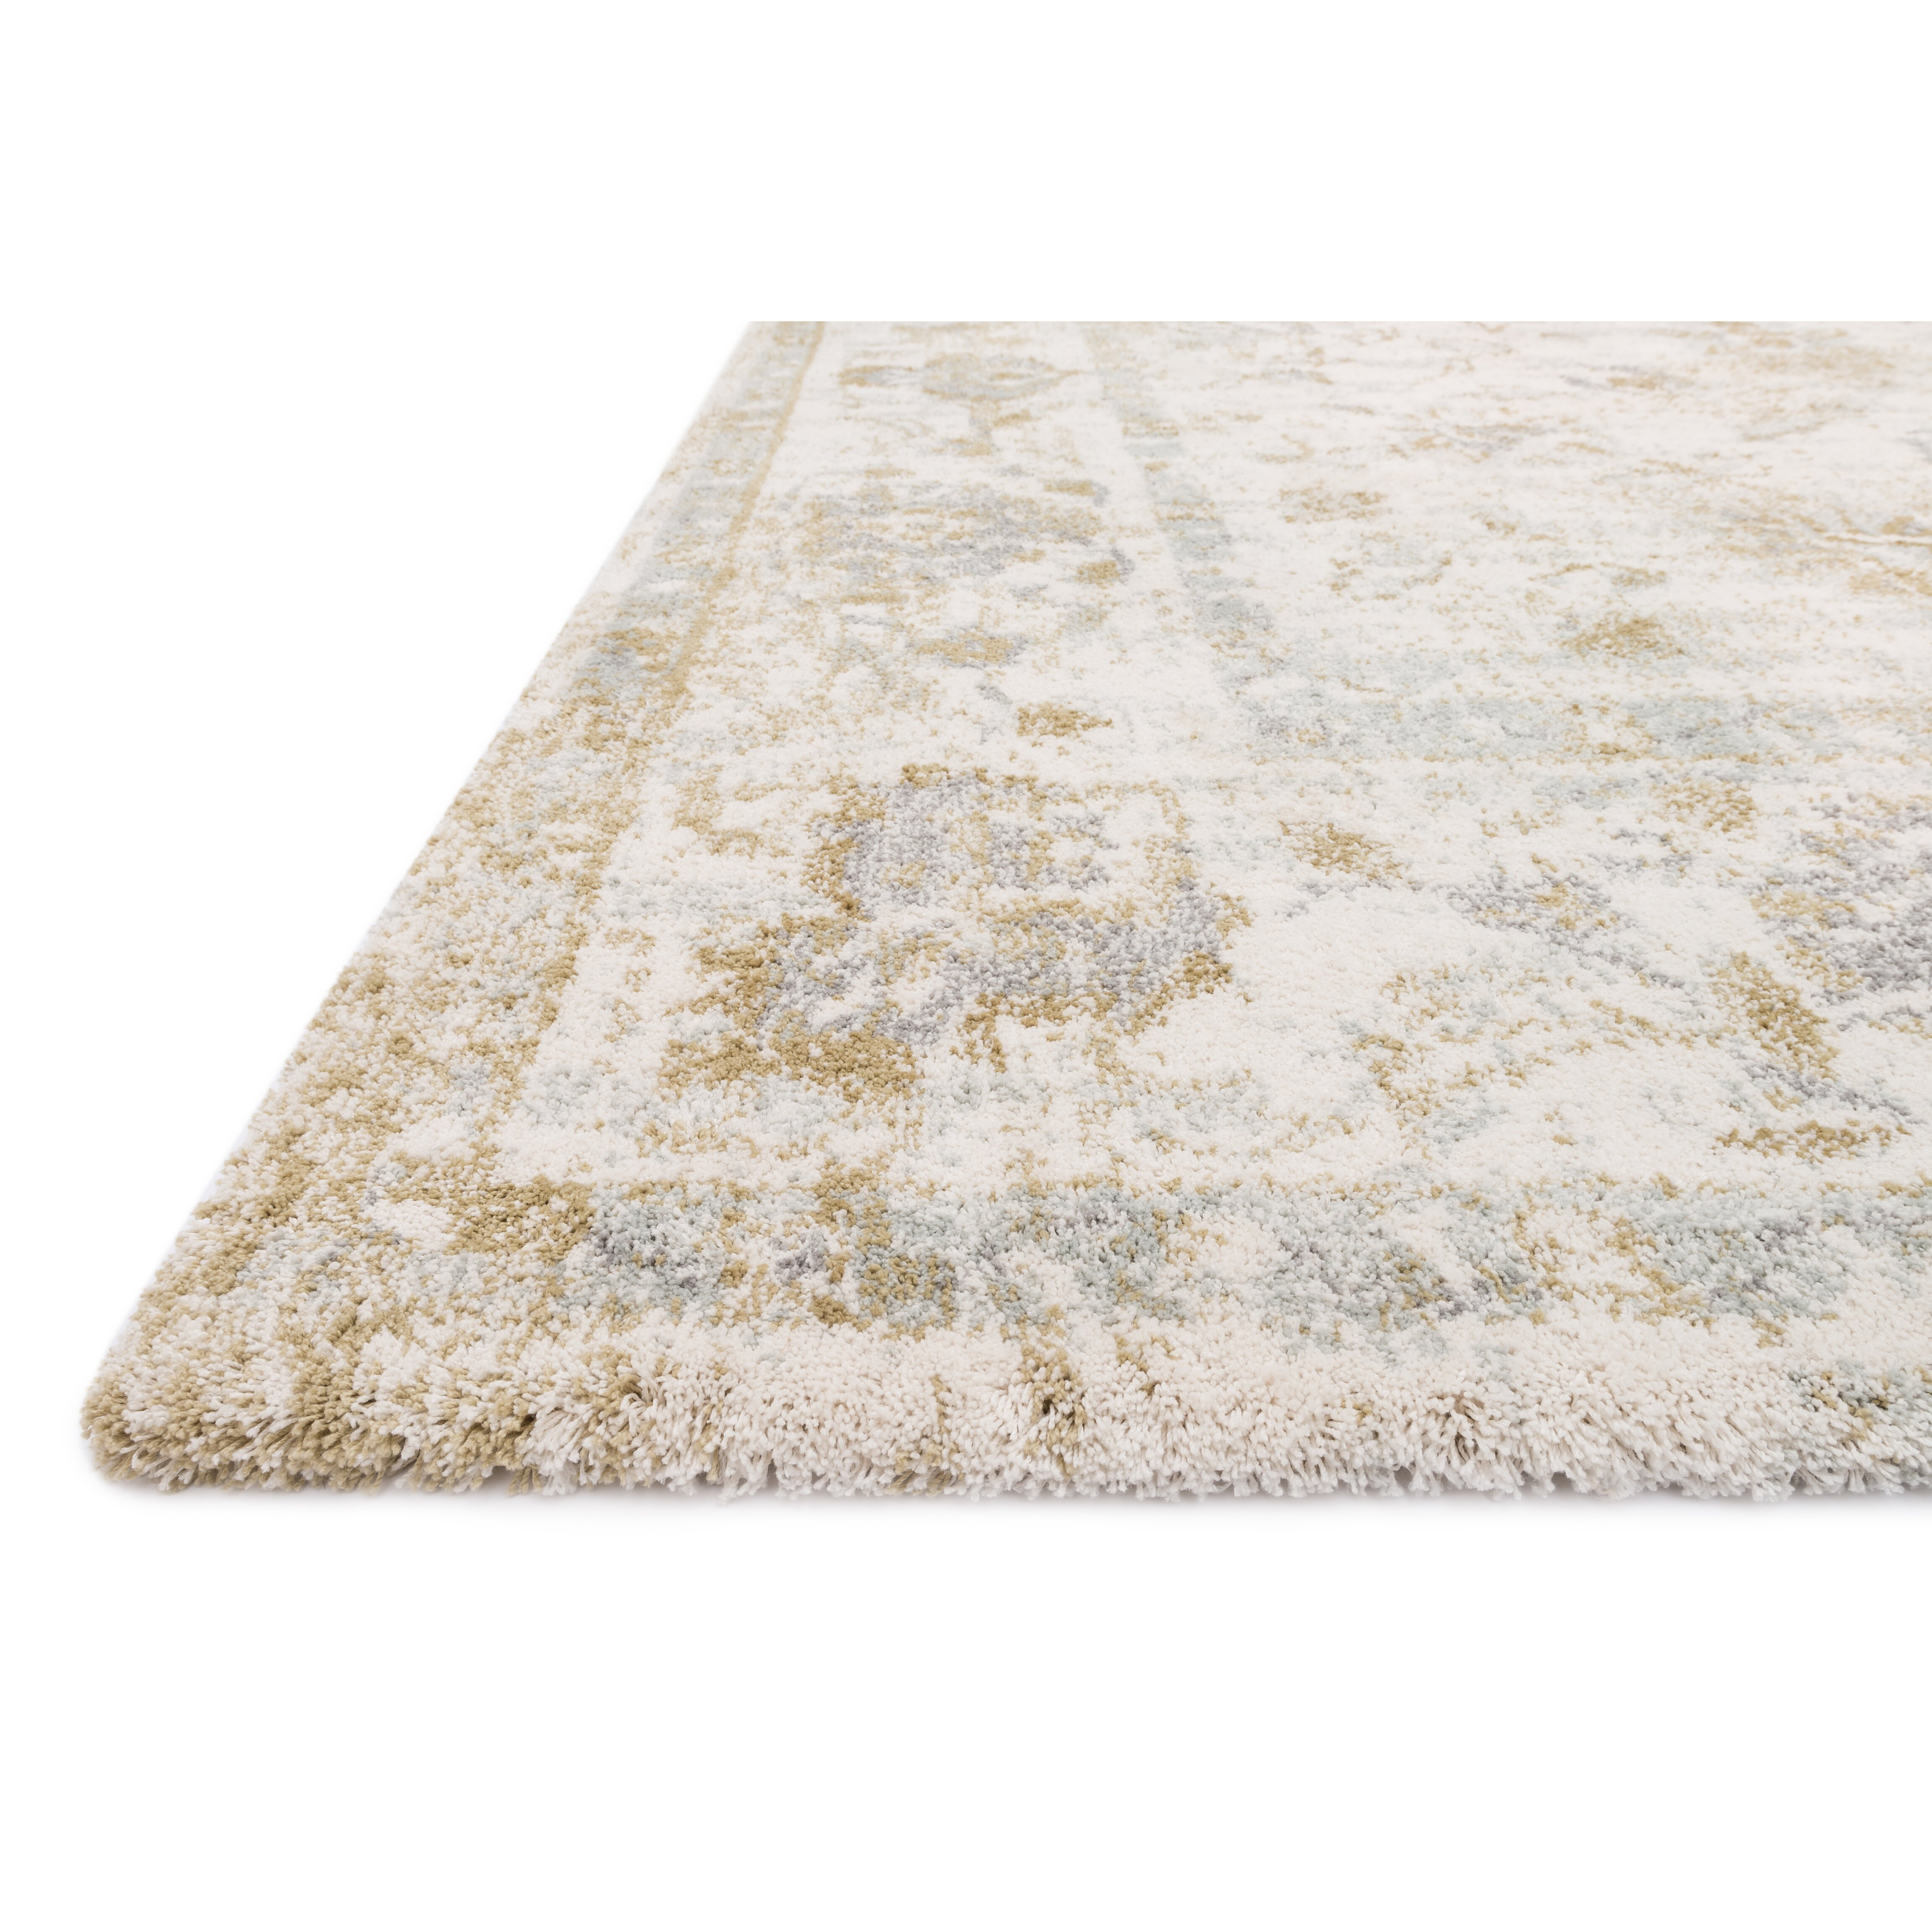 Loloi Rugs Torrance Ivory Area Rug amp Reviews Wayfair : Torrance Ivory Ivory Area Rug TORRTC 07IVIV from www.wayfair.com size 4600 x 4600 jpeg 2540kB